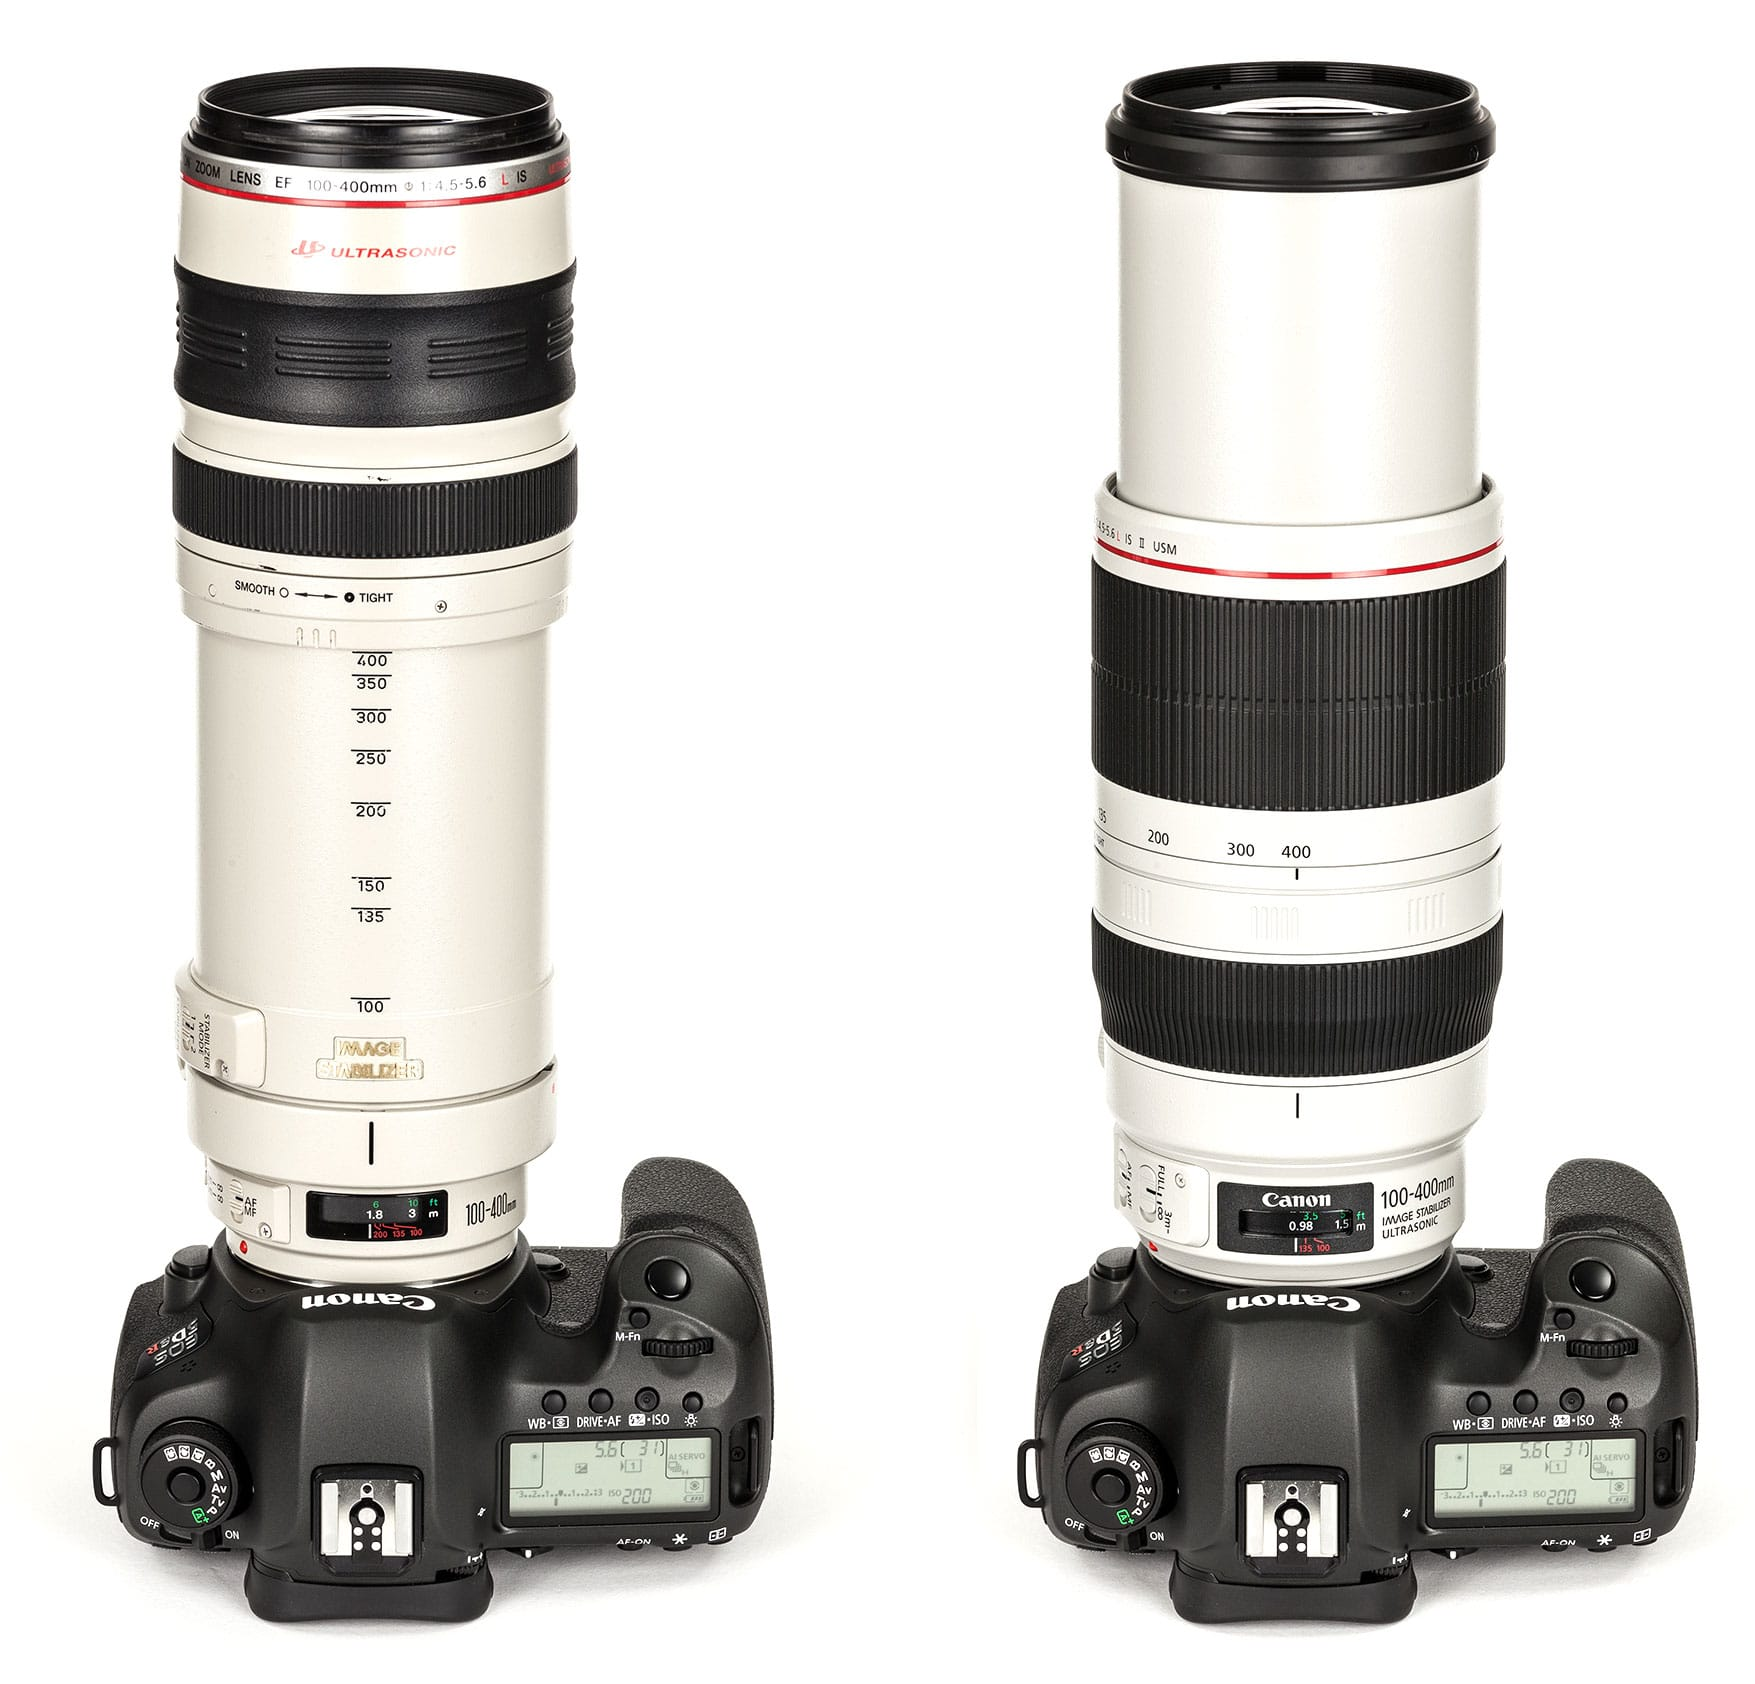 Comparação Mark 1 e Mark 2 - Lente Canon 100-400mm F4.5-5.6 IS USM Mark II